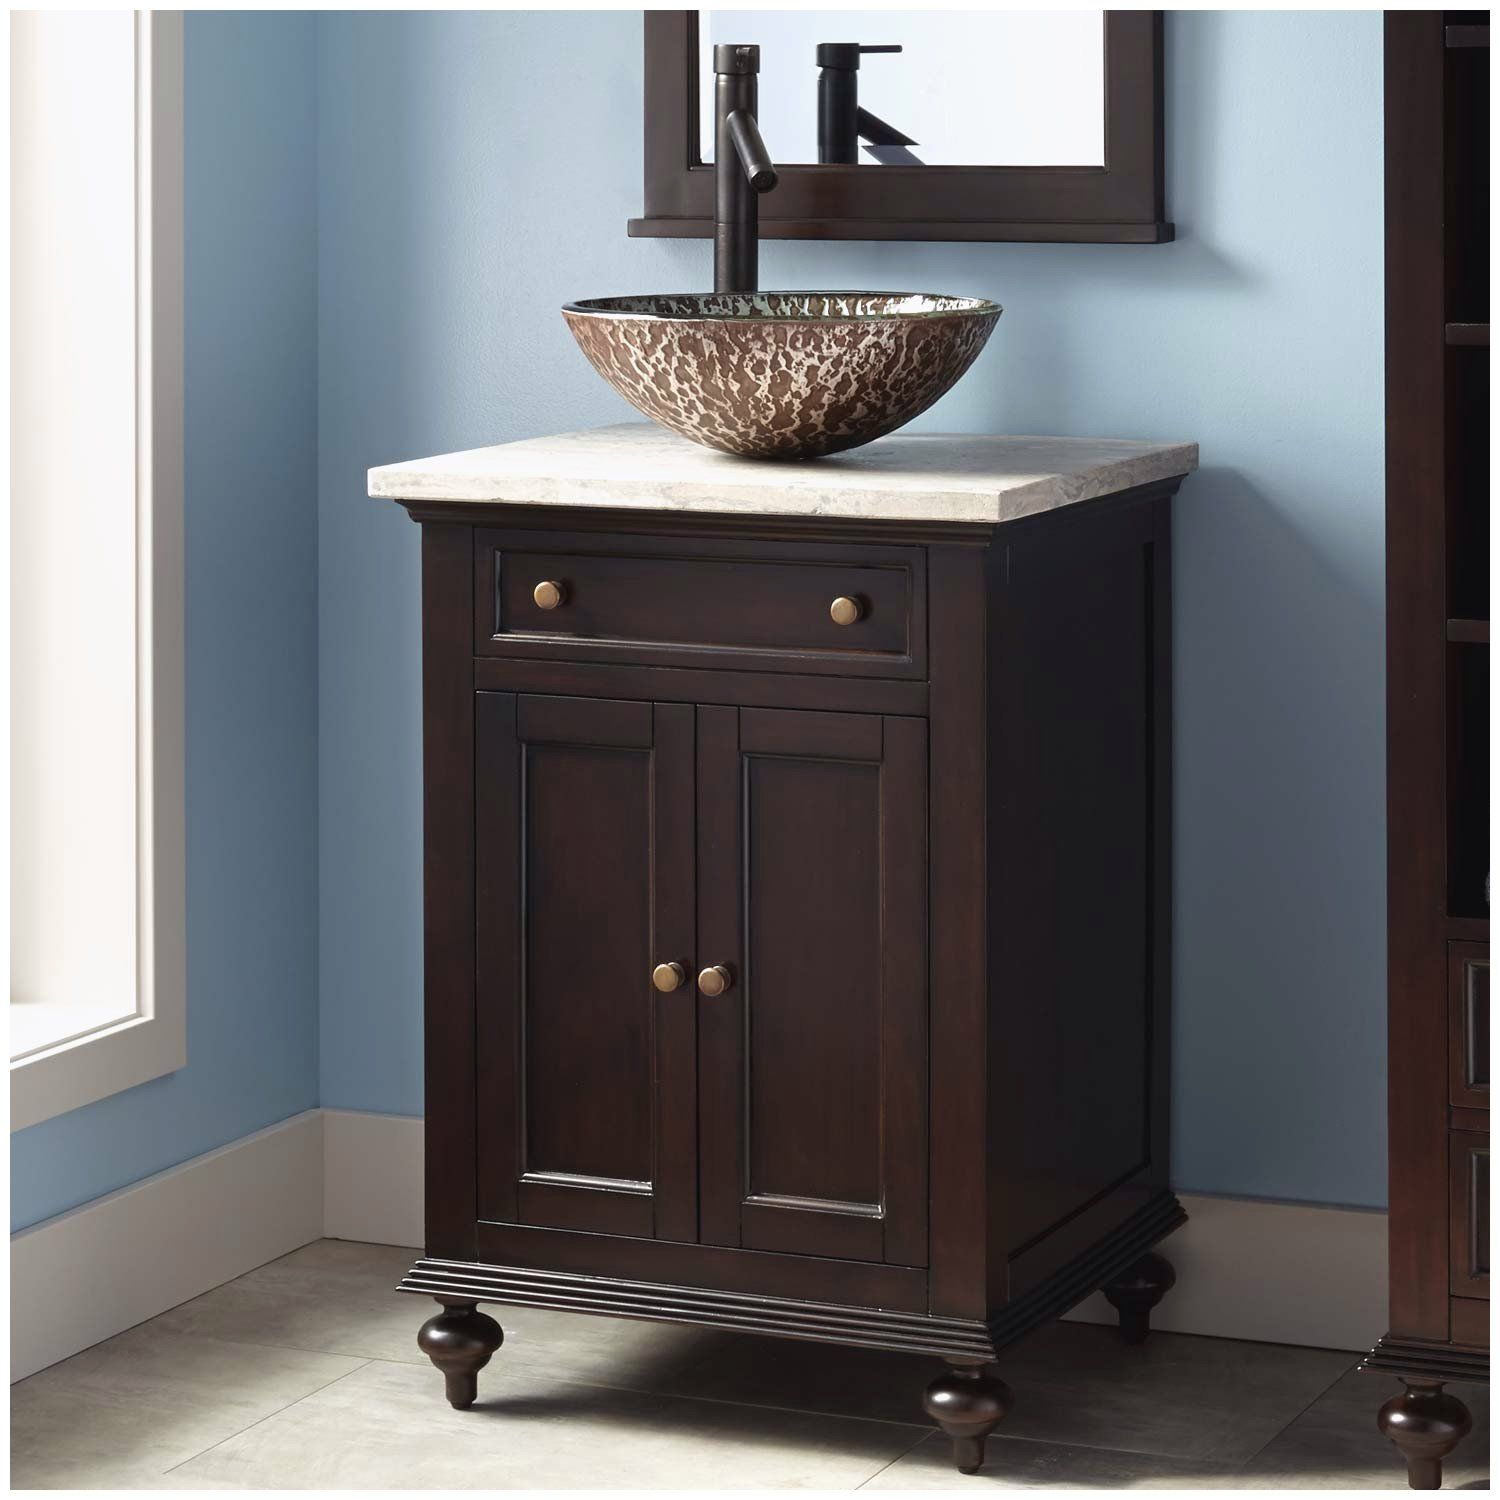 Lowes Clearance Bathroom Vanities In 2020 Small Bathroom